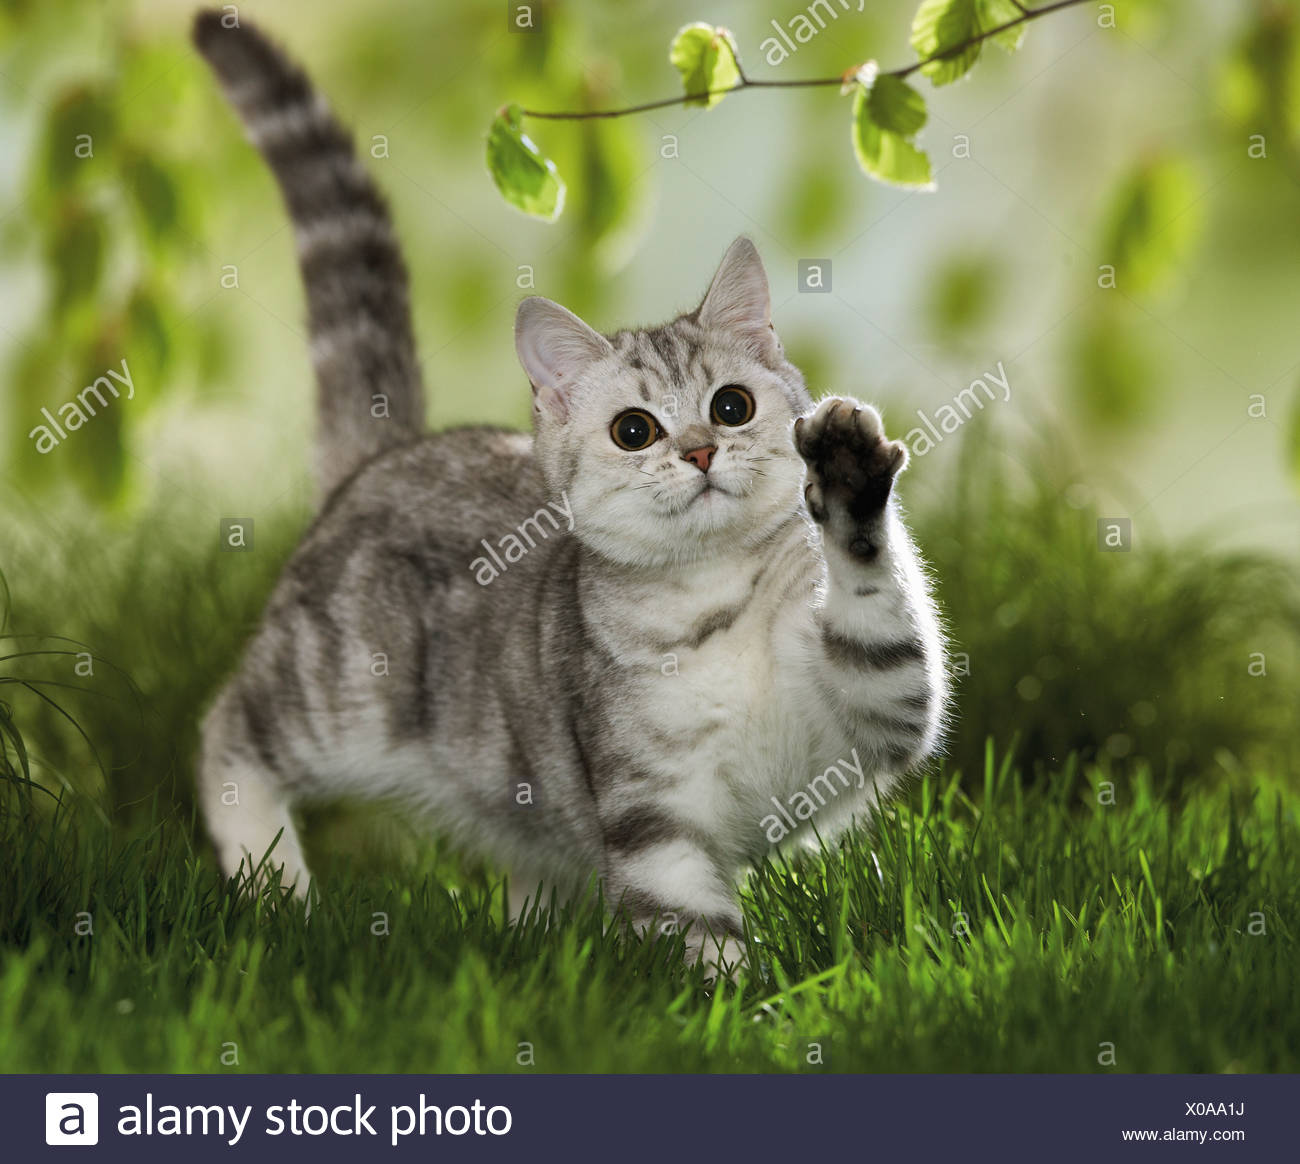 British Shorthair cat - playing with twig - Stock Image